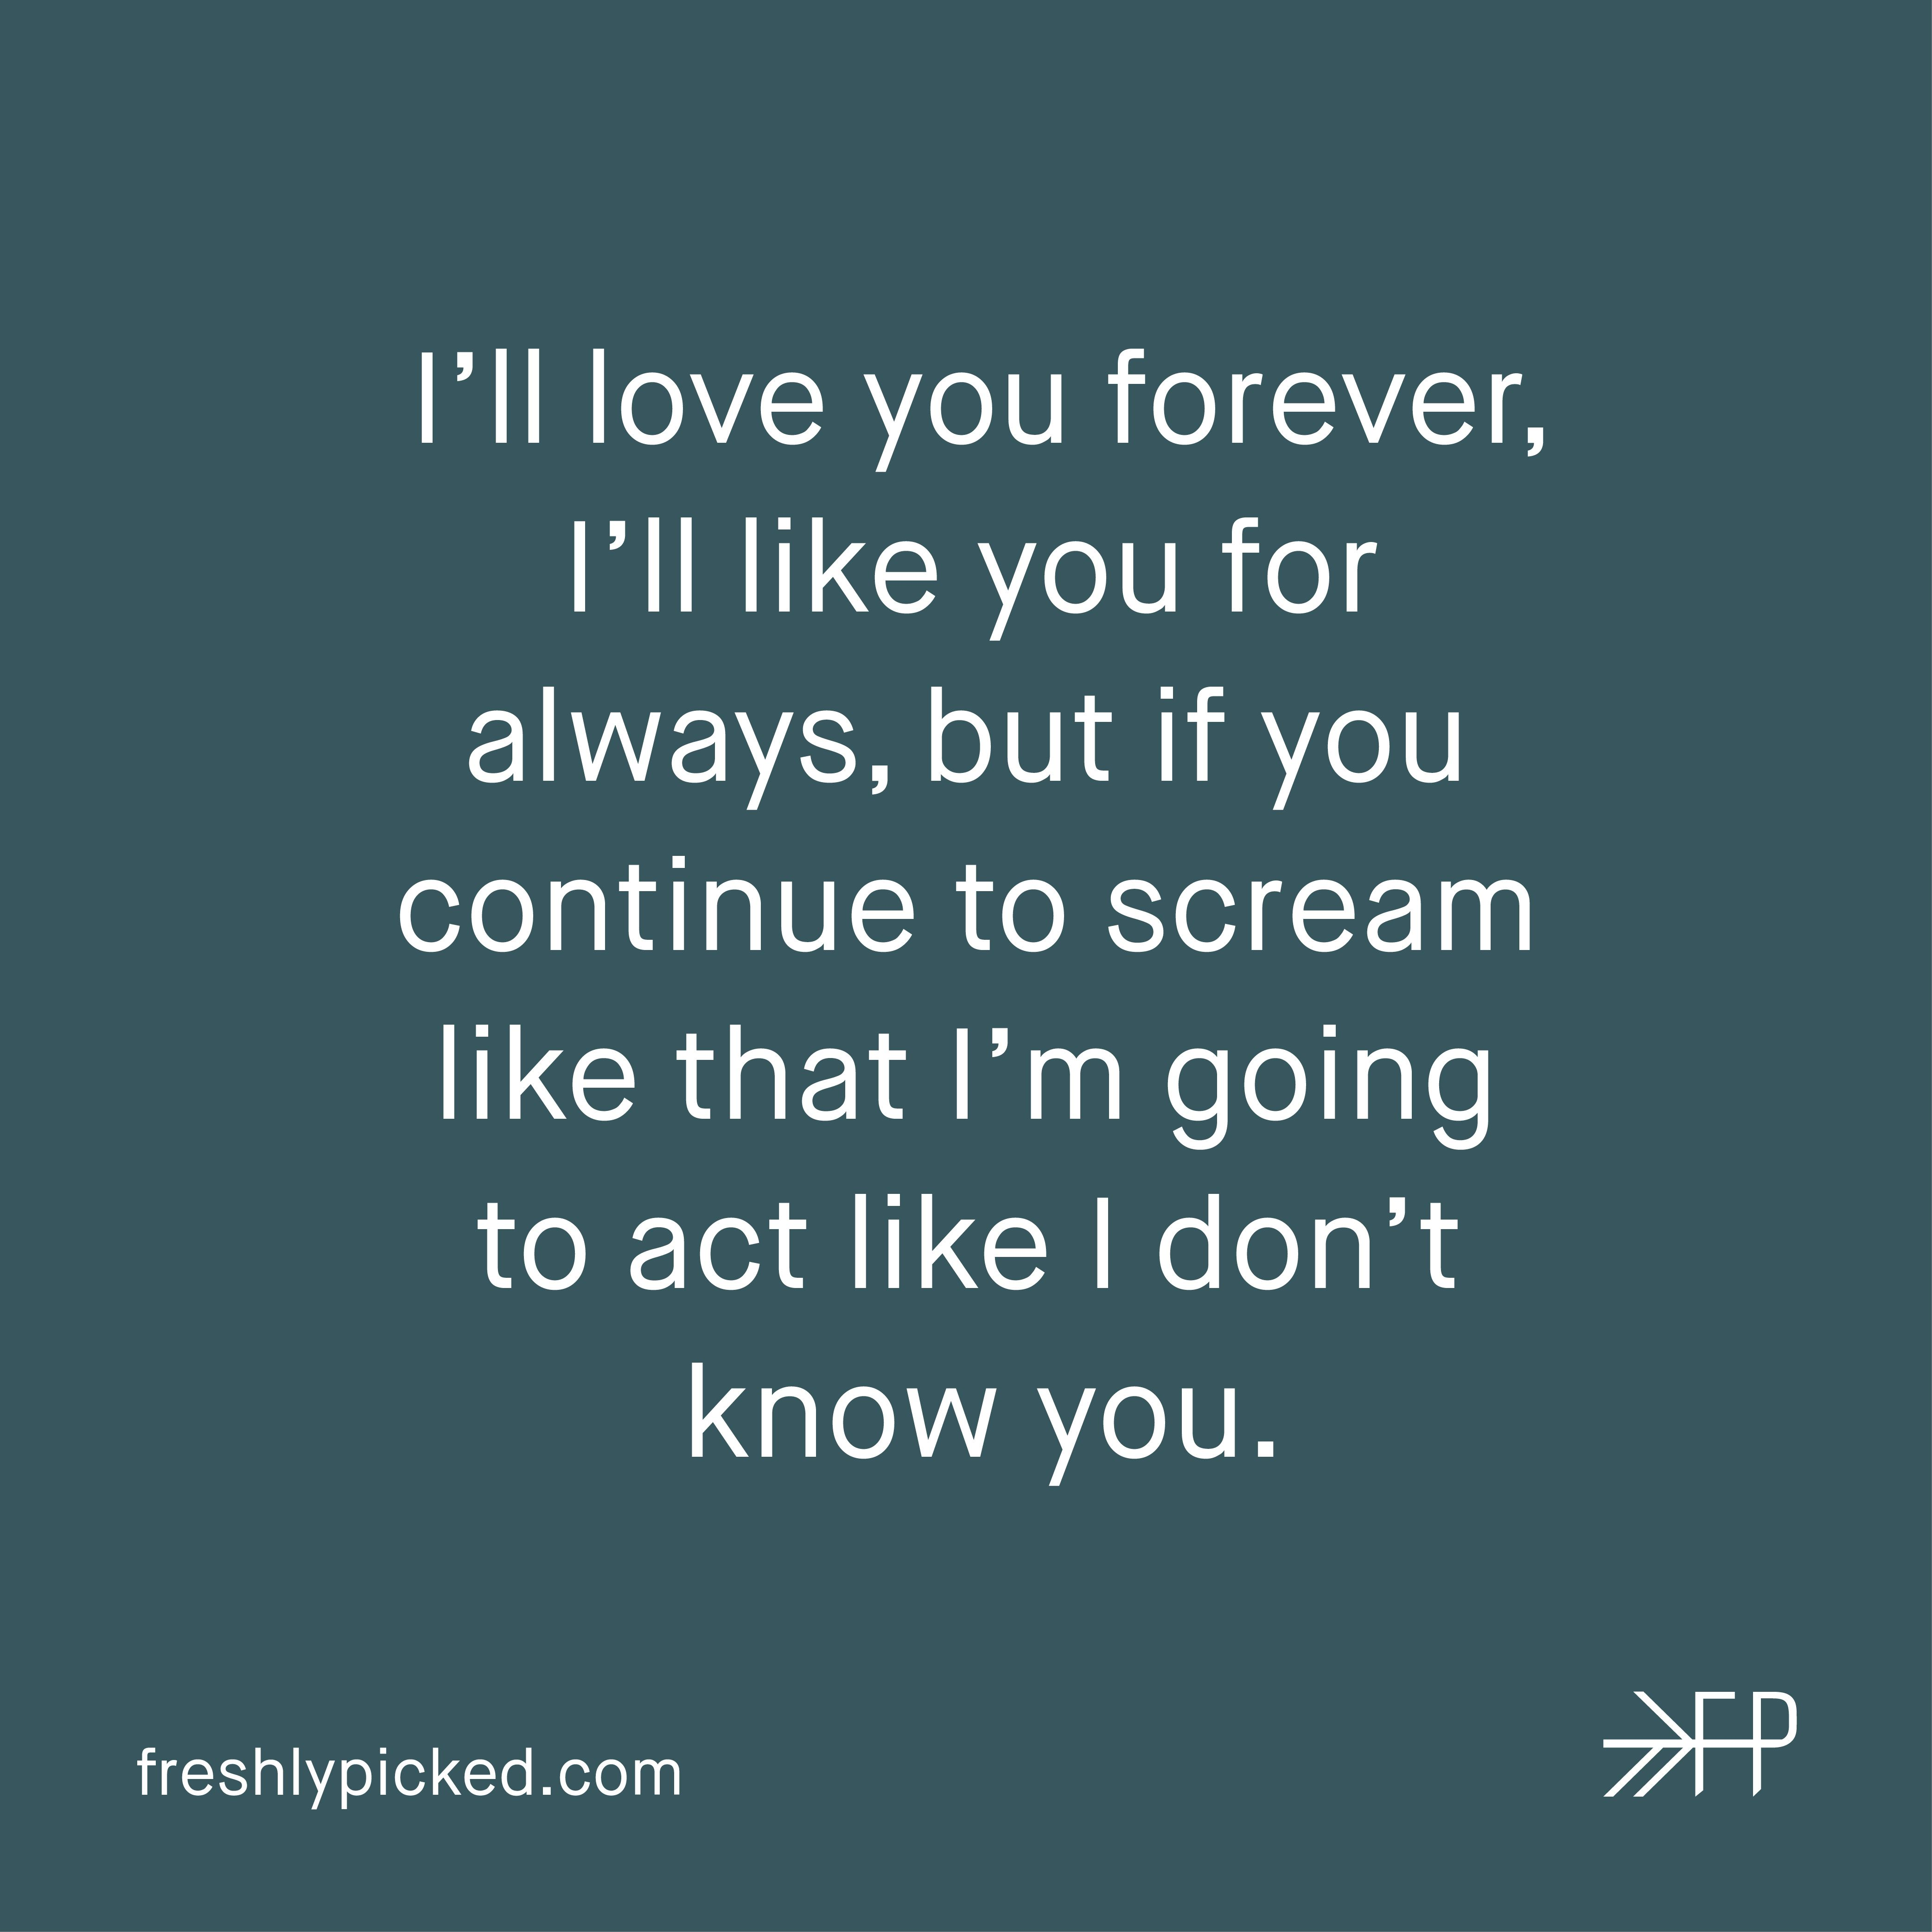 I Love You Forever I Like You For Always Quote I'll Love You Forever I'll Like You For Always But If You